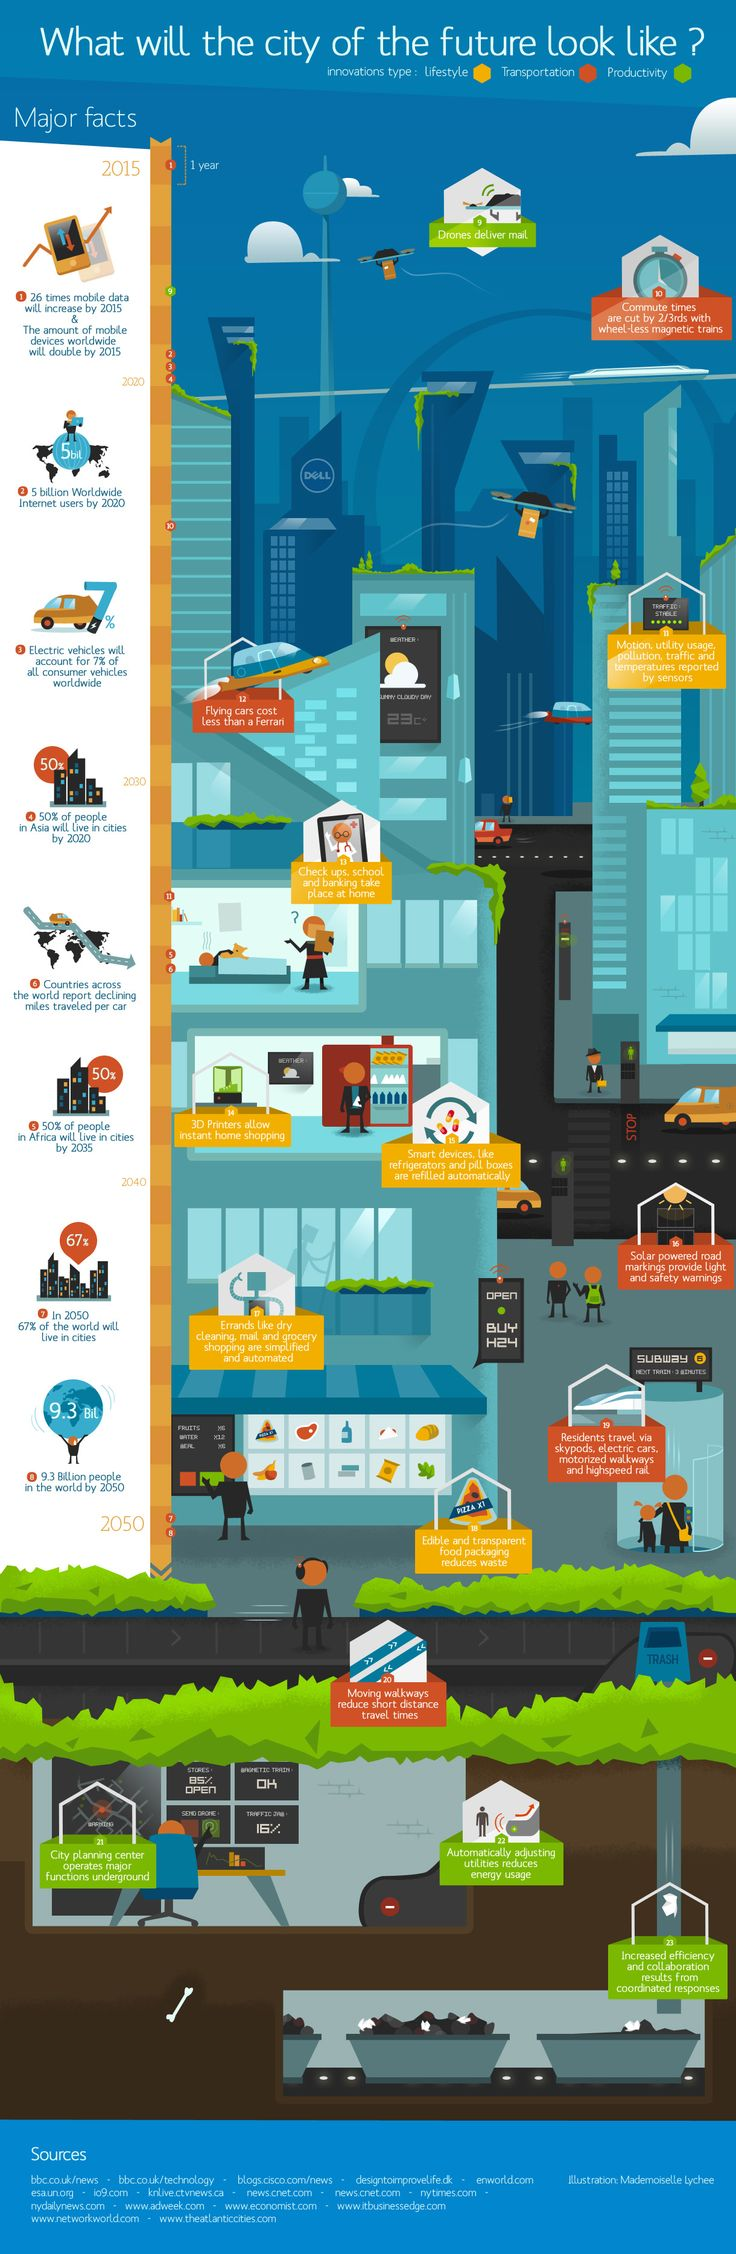 What Will The City Of The Future Look Like? #Technology #Future #Infographic